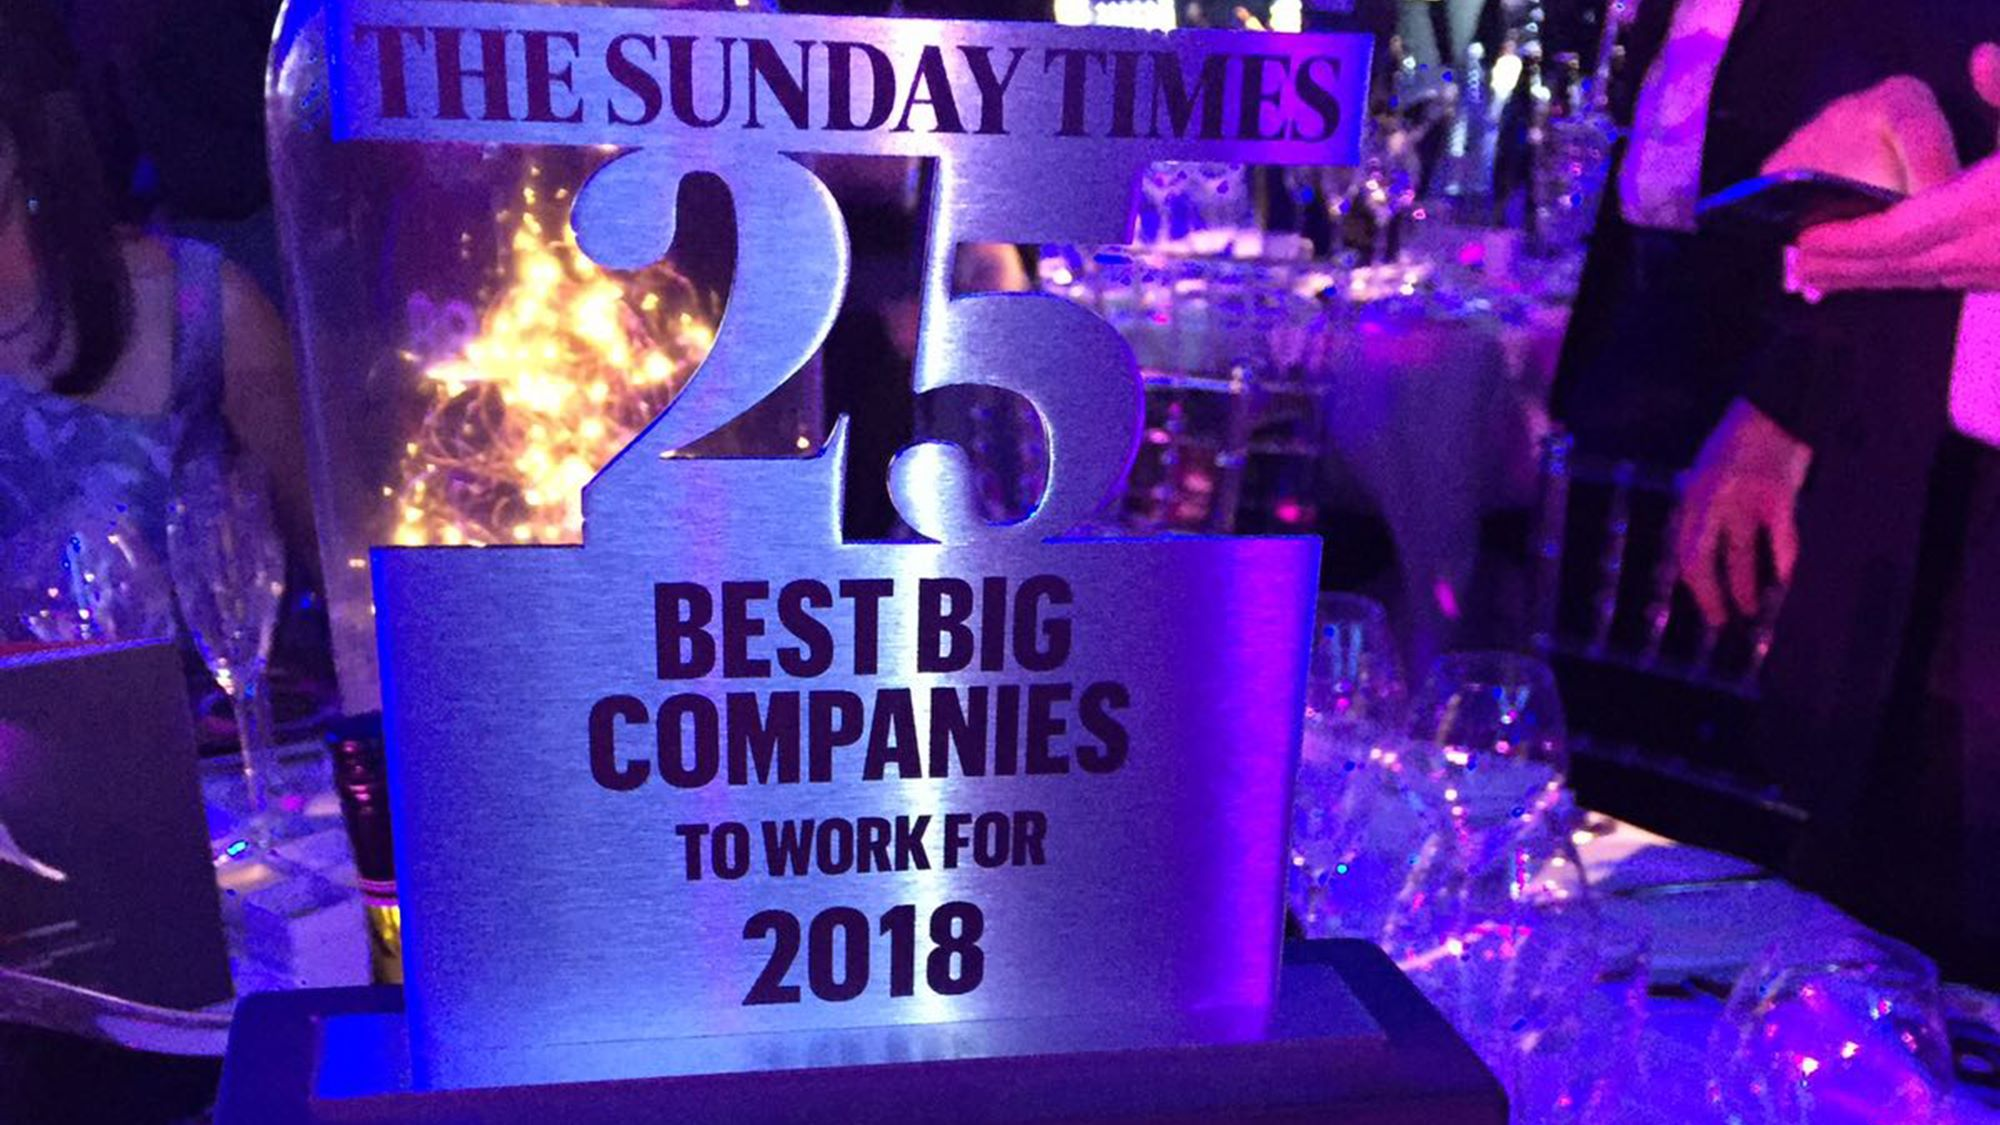 The Sunday Times 25 Best Big Companies to Work For 2018